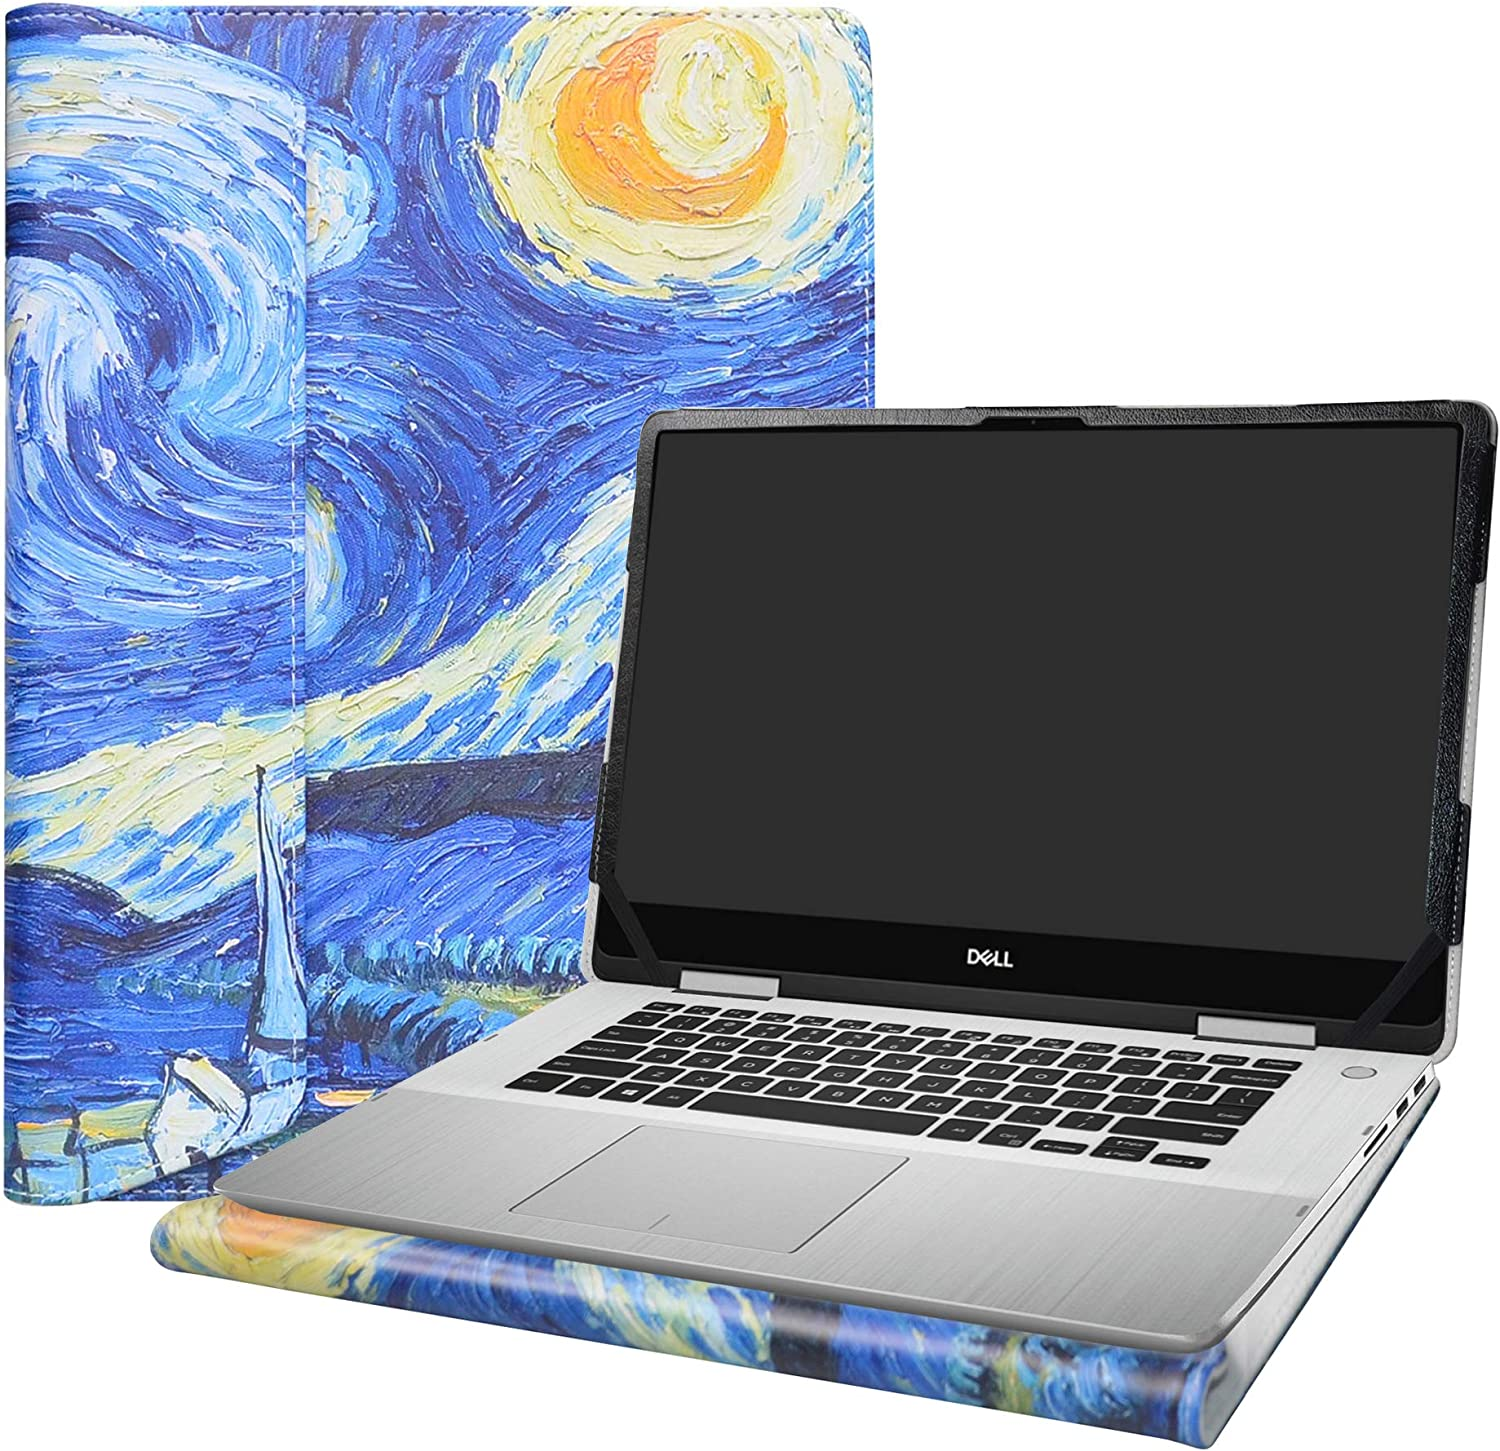 """Alapmk Protective Case Cover for 15.6"""" Dell inspiron 15 2-in-1 7586 i7586 & Acer Aspire 7 15 A715-73G Laptop[Note:Not fit inspiron 15 7580/Aspire 7 A715-74G A715-71G A715-72G],Starry Night"""